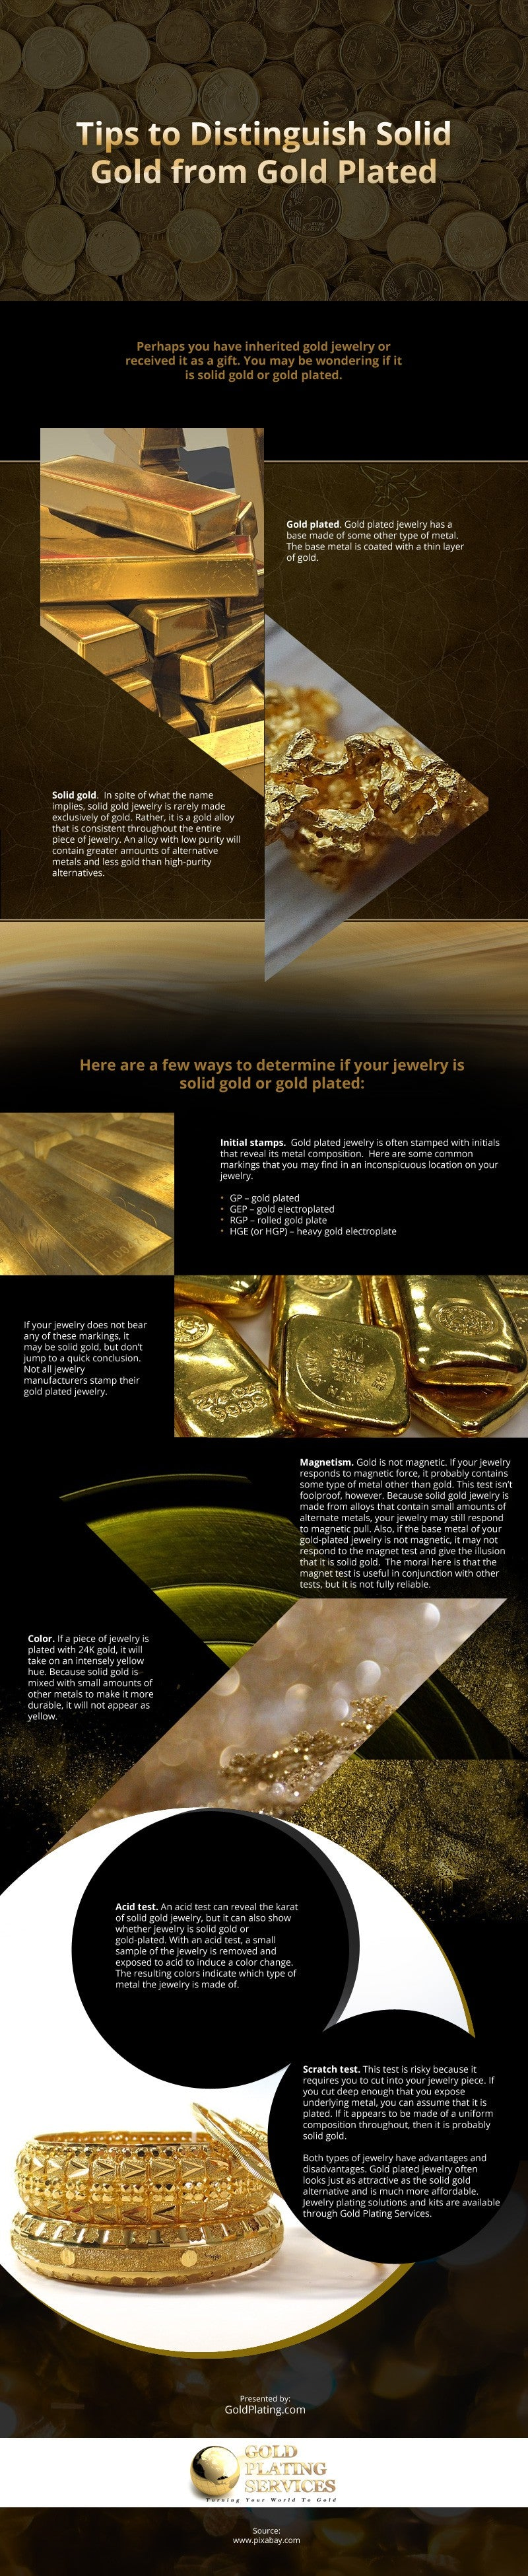 Tips to Distinguish Solid Gold from Gold Plated [infographic]